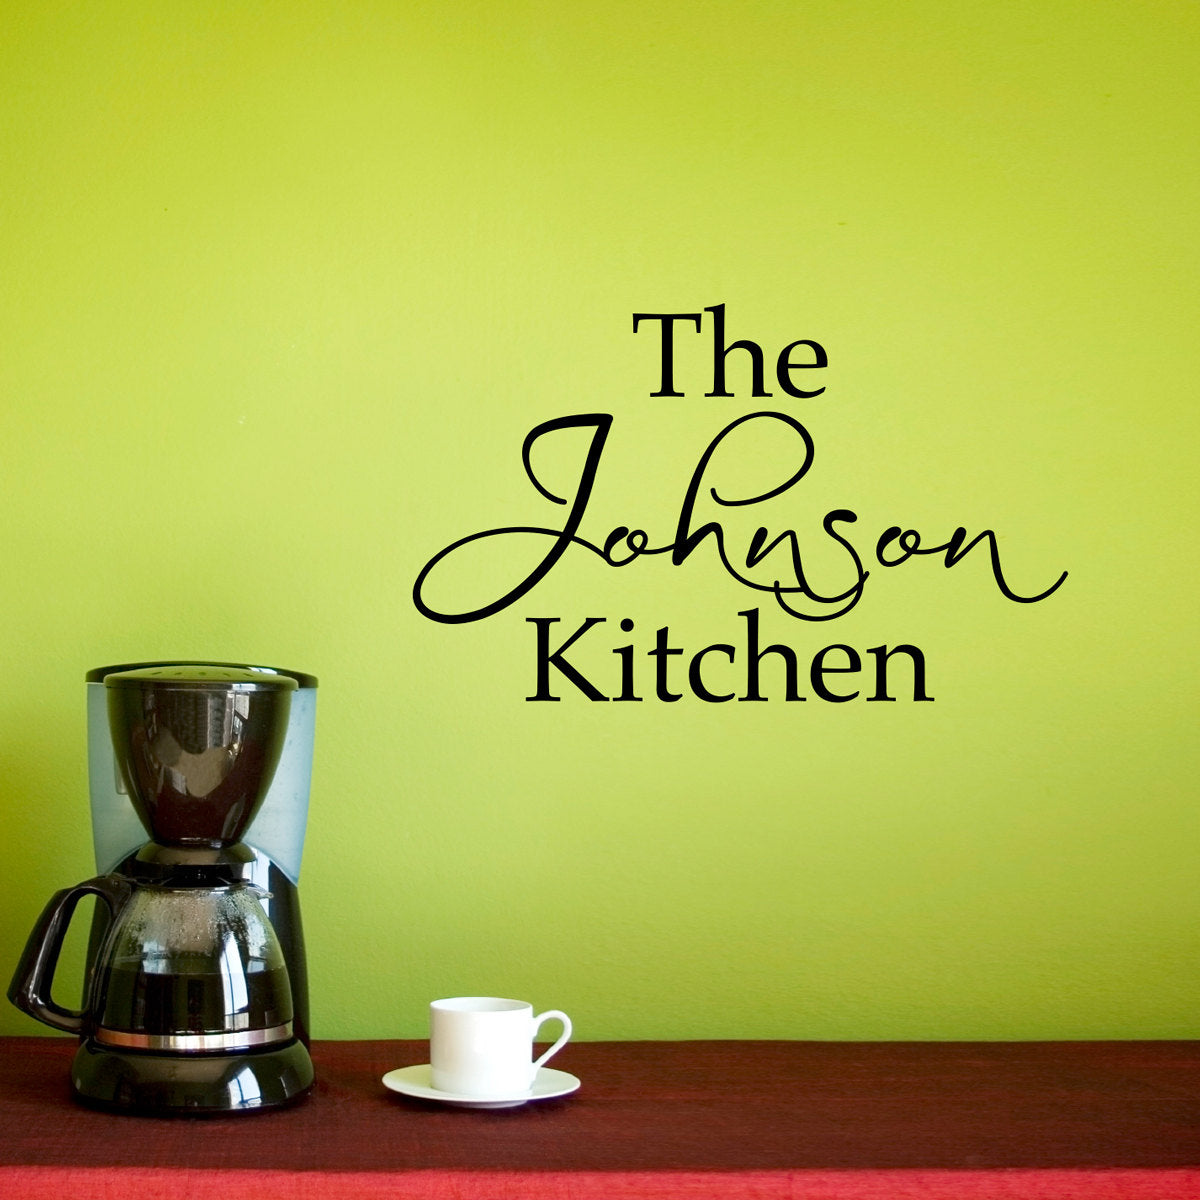 Kitchen Wall Decal - Personalized Name Decal - Kitchen Wall Art ...